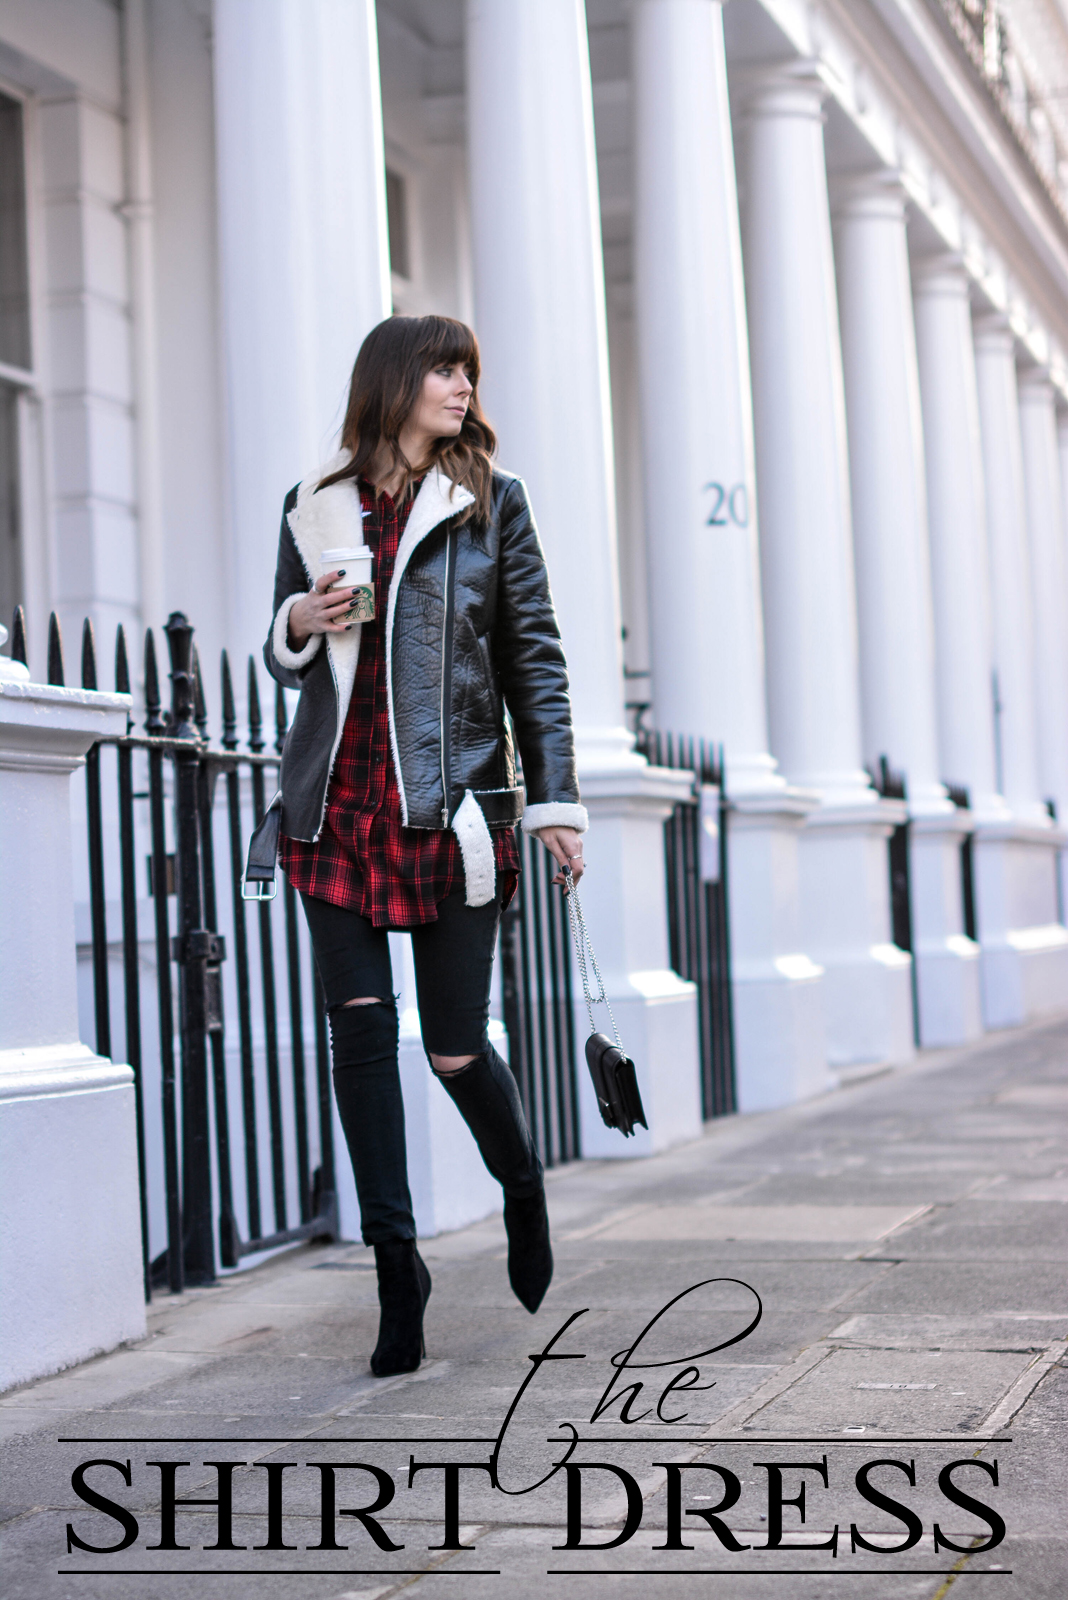 EJSTYLE - Emma Hill, Missguided red check shirt dress, Missguided borg aviator biker jacket, missguided black brossbody bag, missguided black ripped skinny jeans, Missguided stiletto heel ankle boots, street style